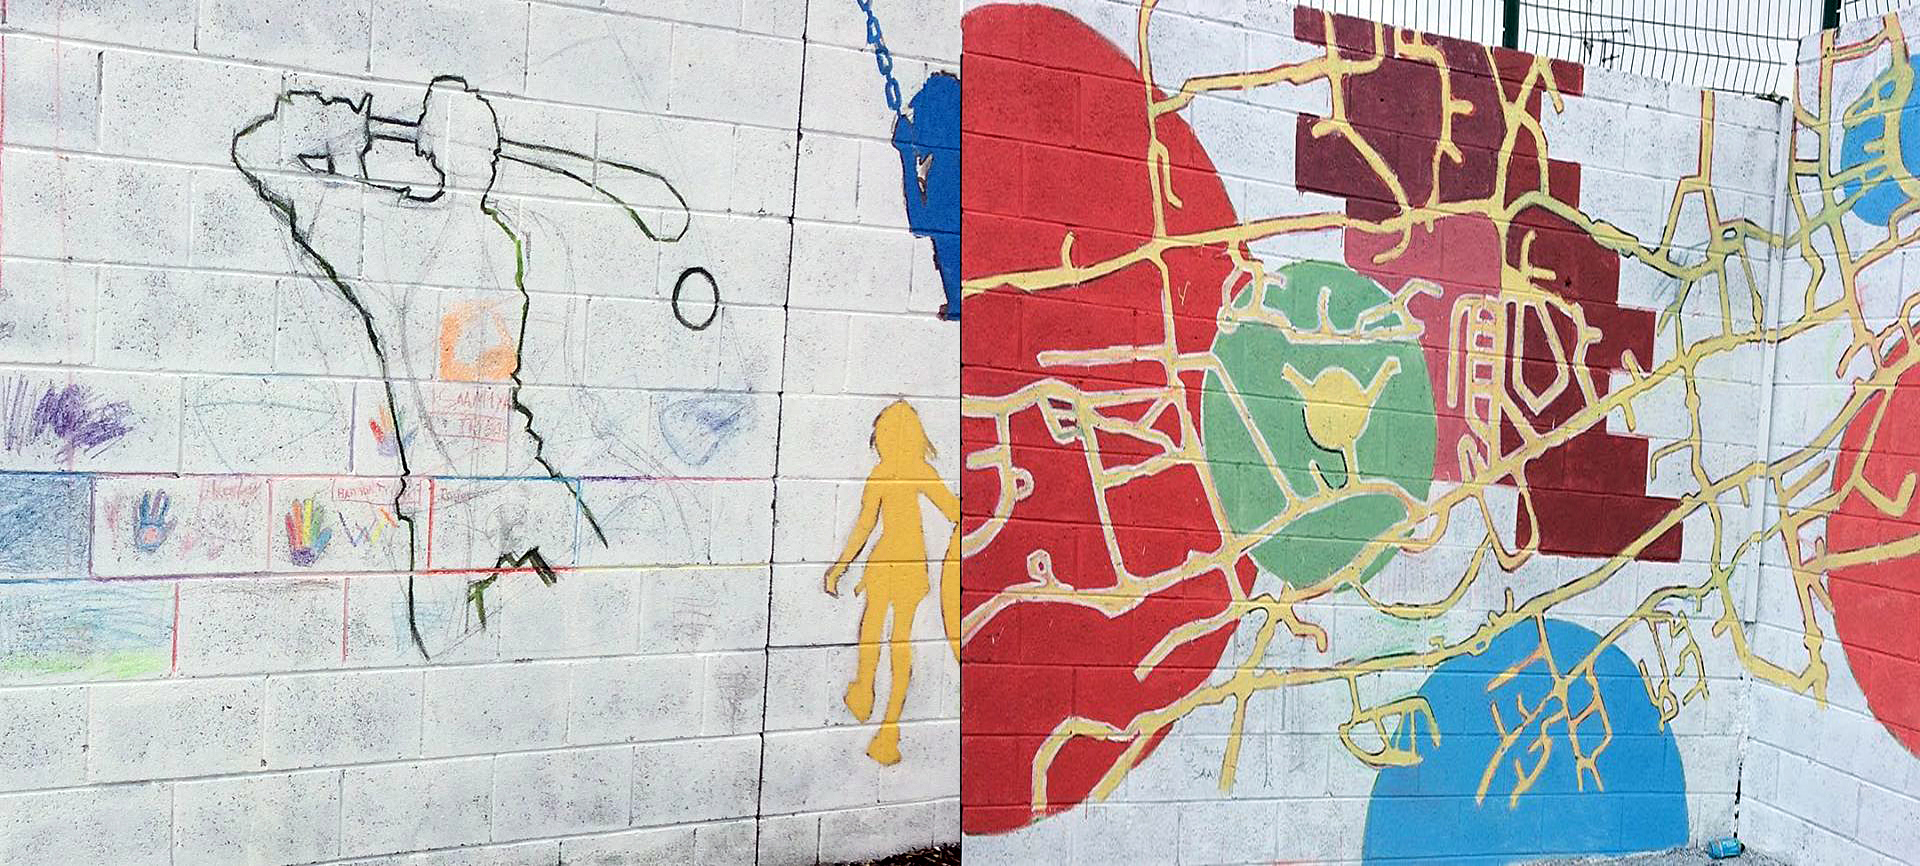 2019 Community project Mural Wexford Town image